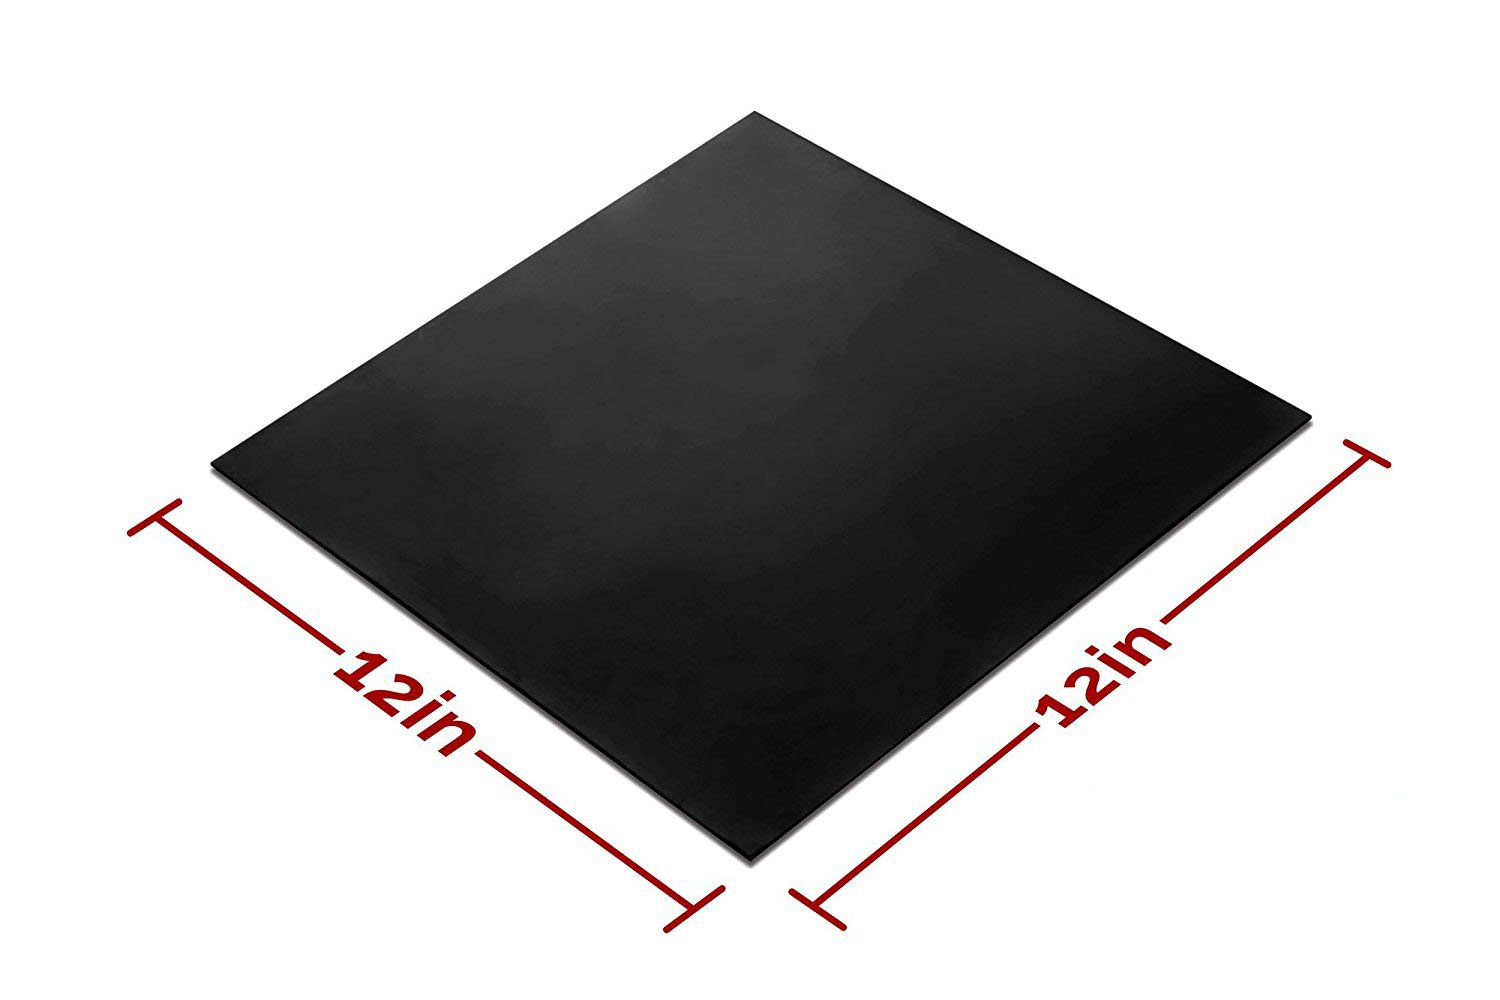 Protection Bumpers Leveling Black Heat Resistant Rubber Pad Thin Silicone Grade Rubber Gasket Sheet 12 by 12 inch,1//25 Inch Thick Gaskets DIY Material Sealing Flooring Supports Abrasion